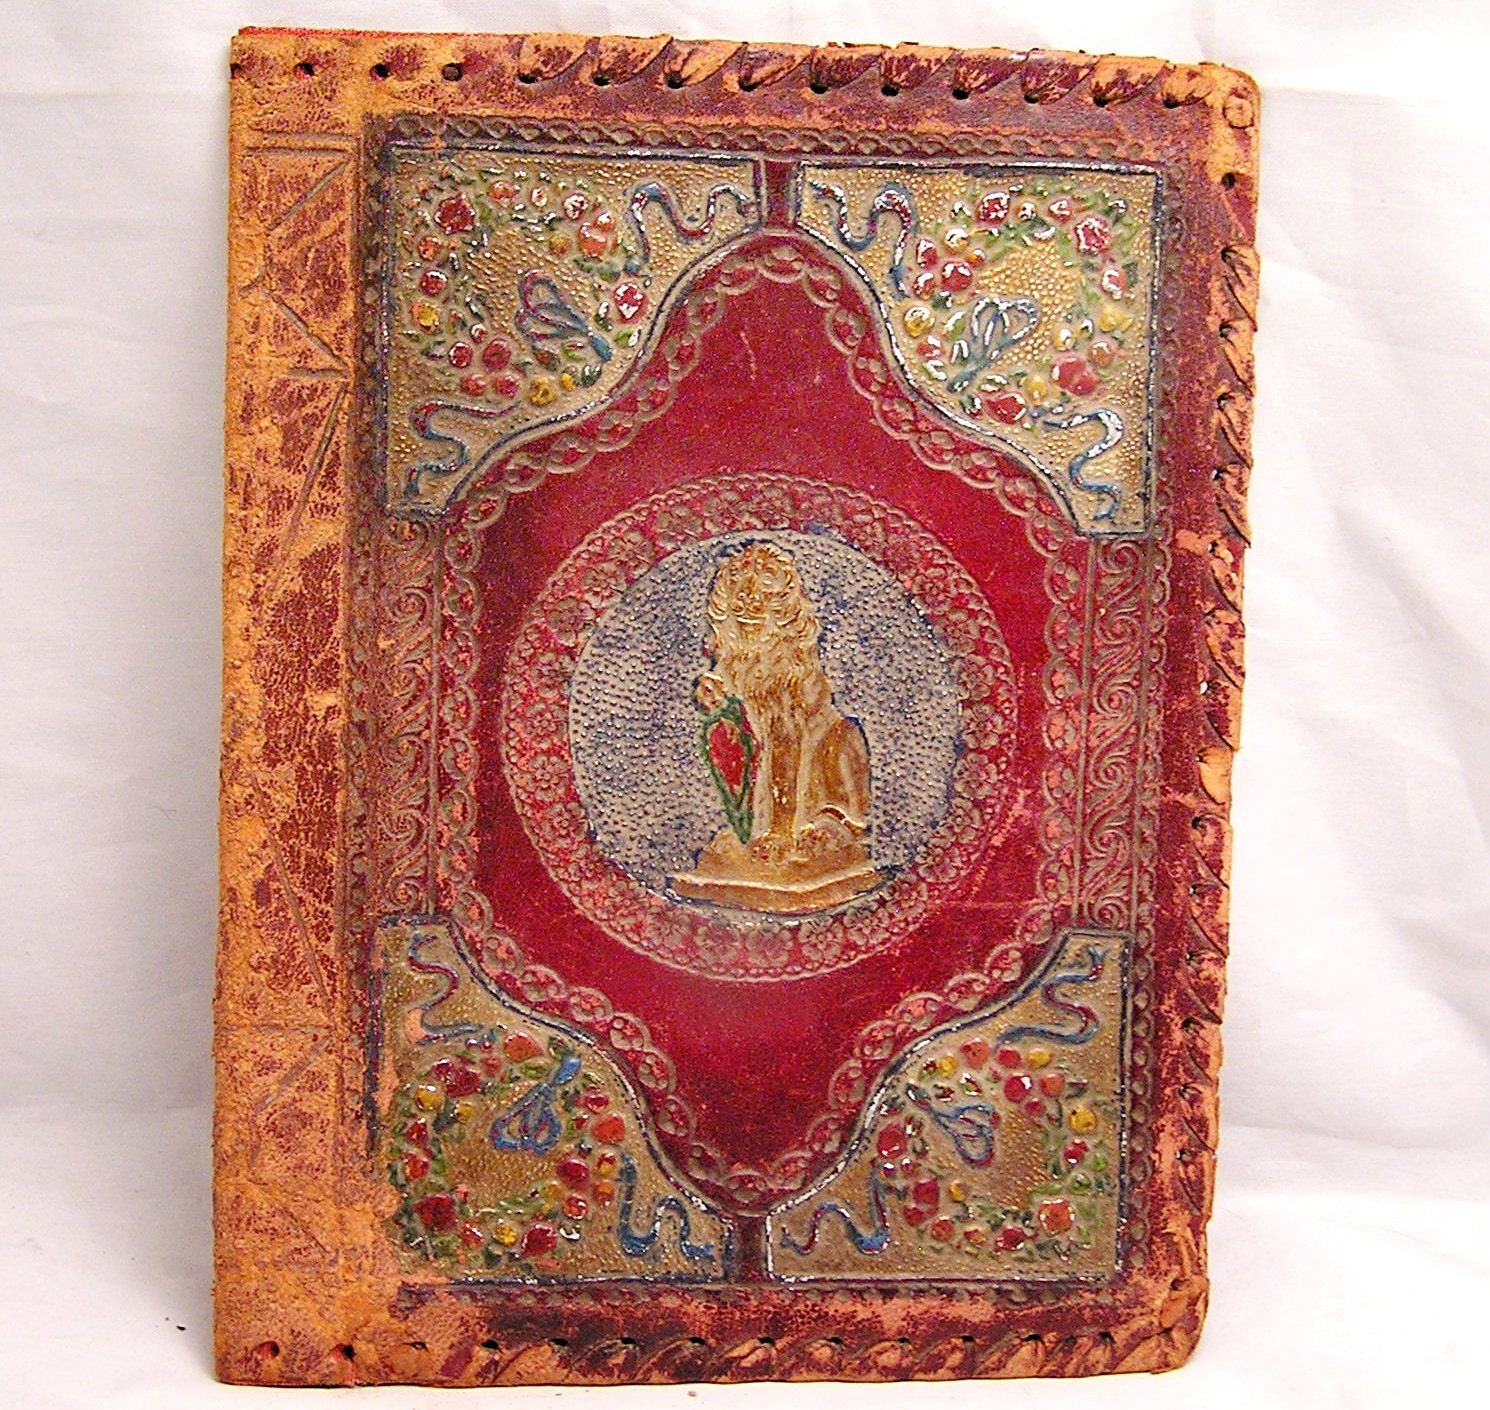 Vintage Leather Book Cover : Antique embossed leather book cover with lion